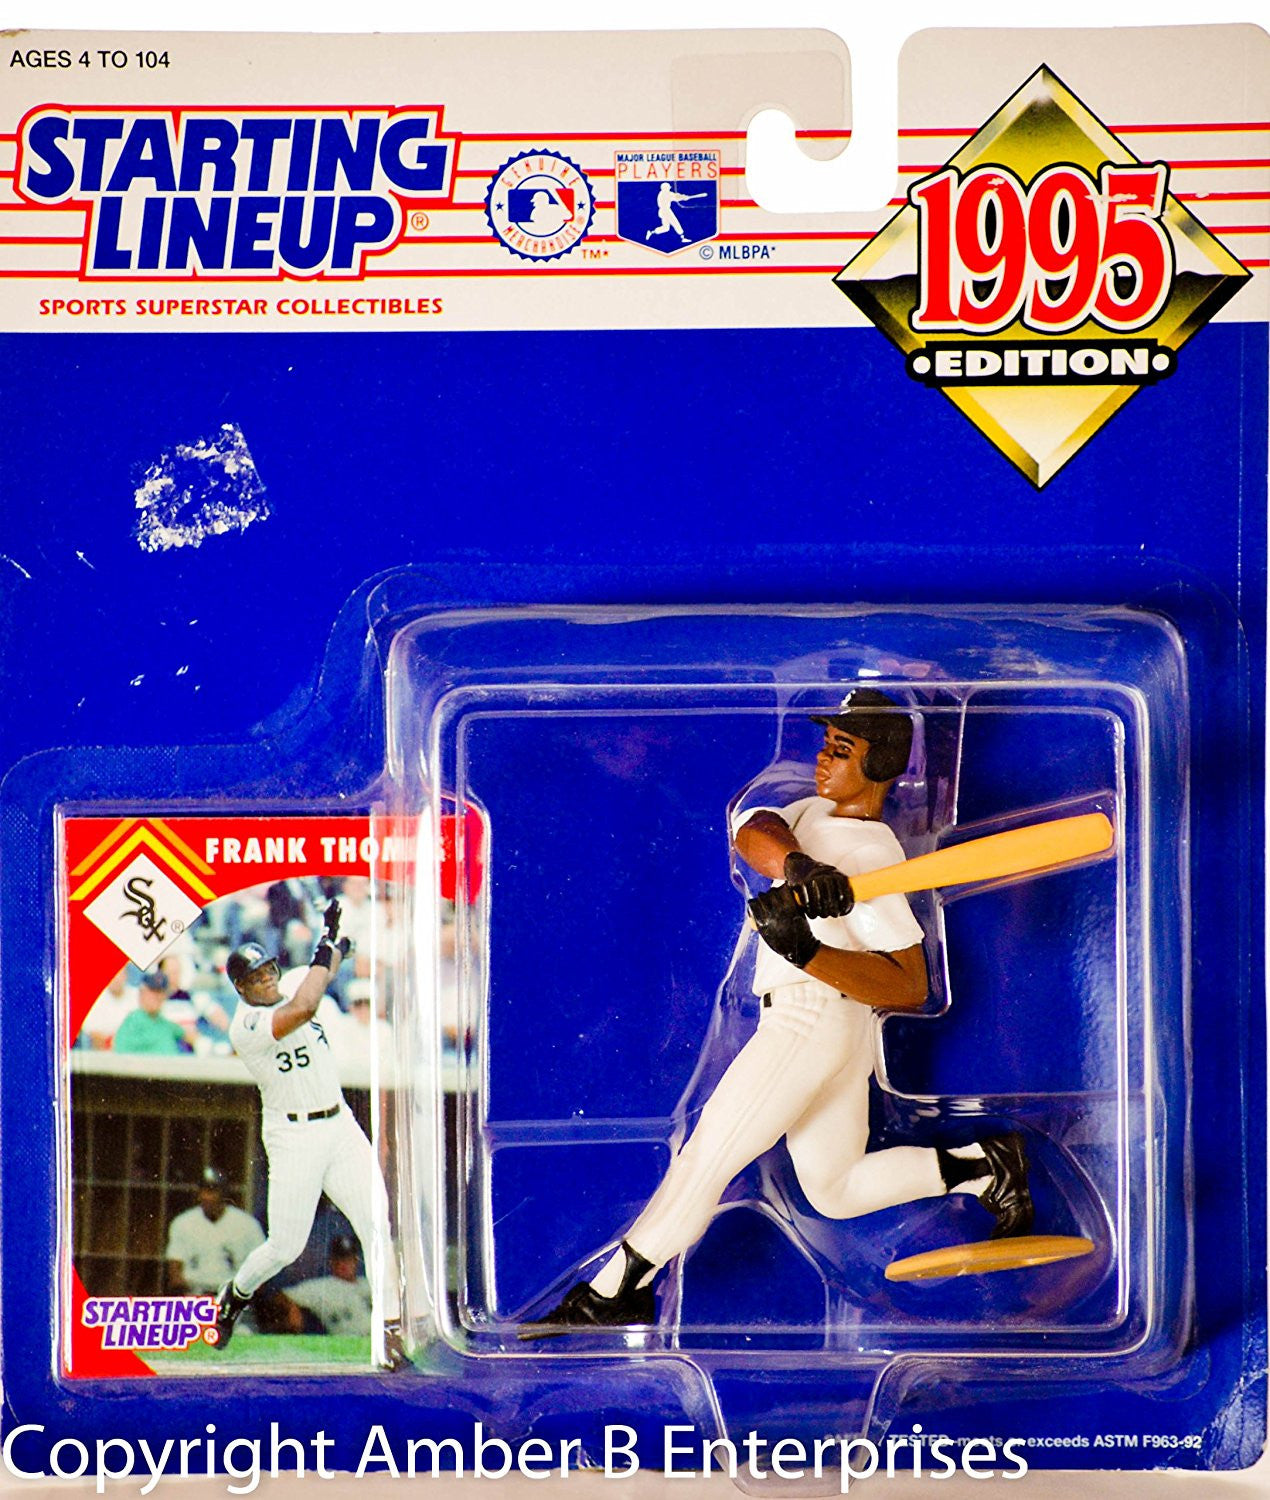 1995 Starting Lineup - MLB - Frank Thomas #35 Action Figure - Chicago White Sox - w/ Trading Card - Out of Production - New - Mint - Rare - Limited Edition - Collectible